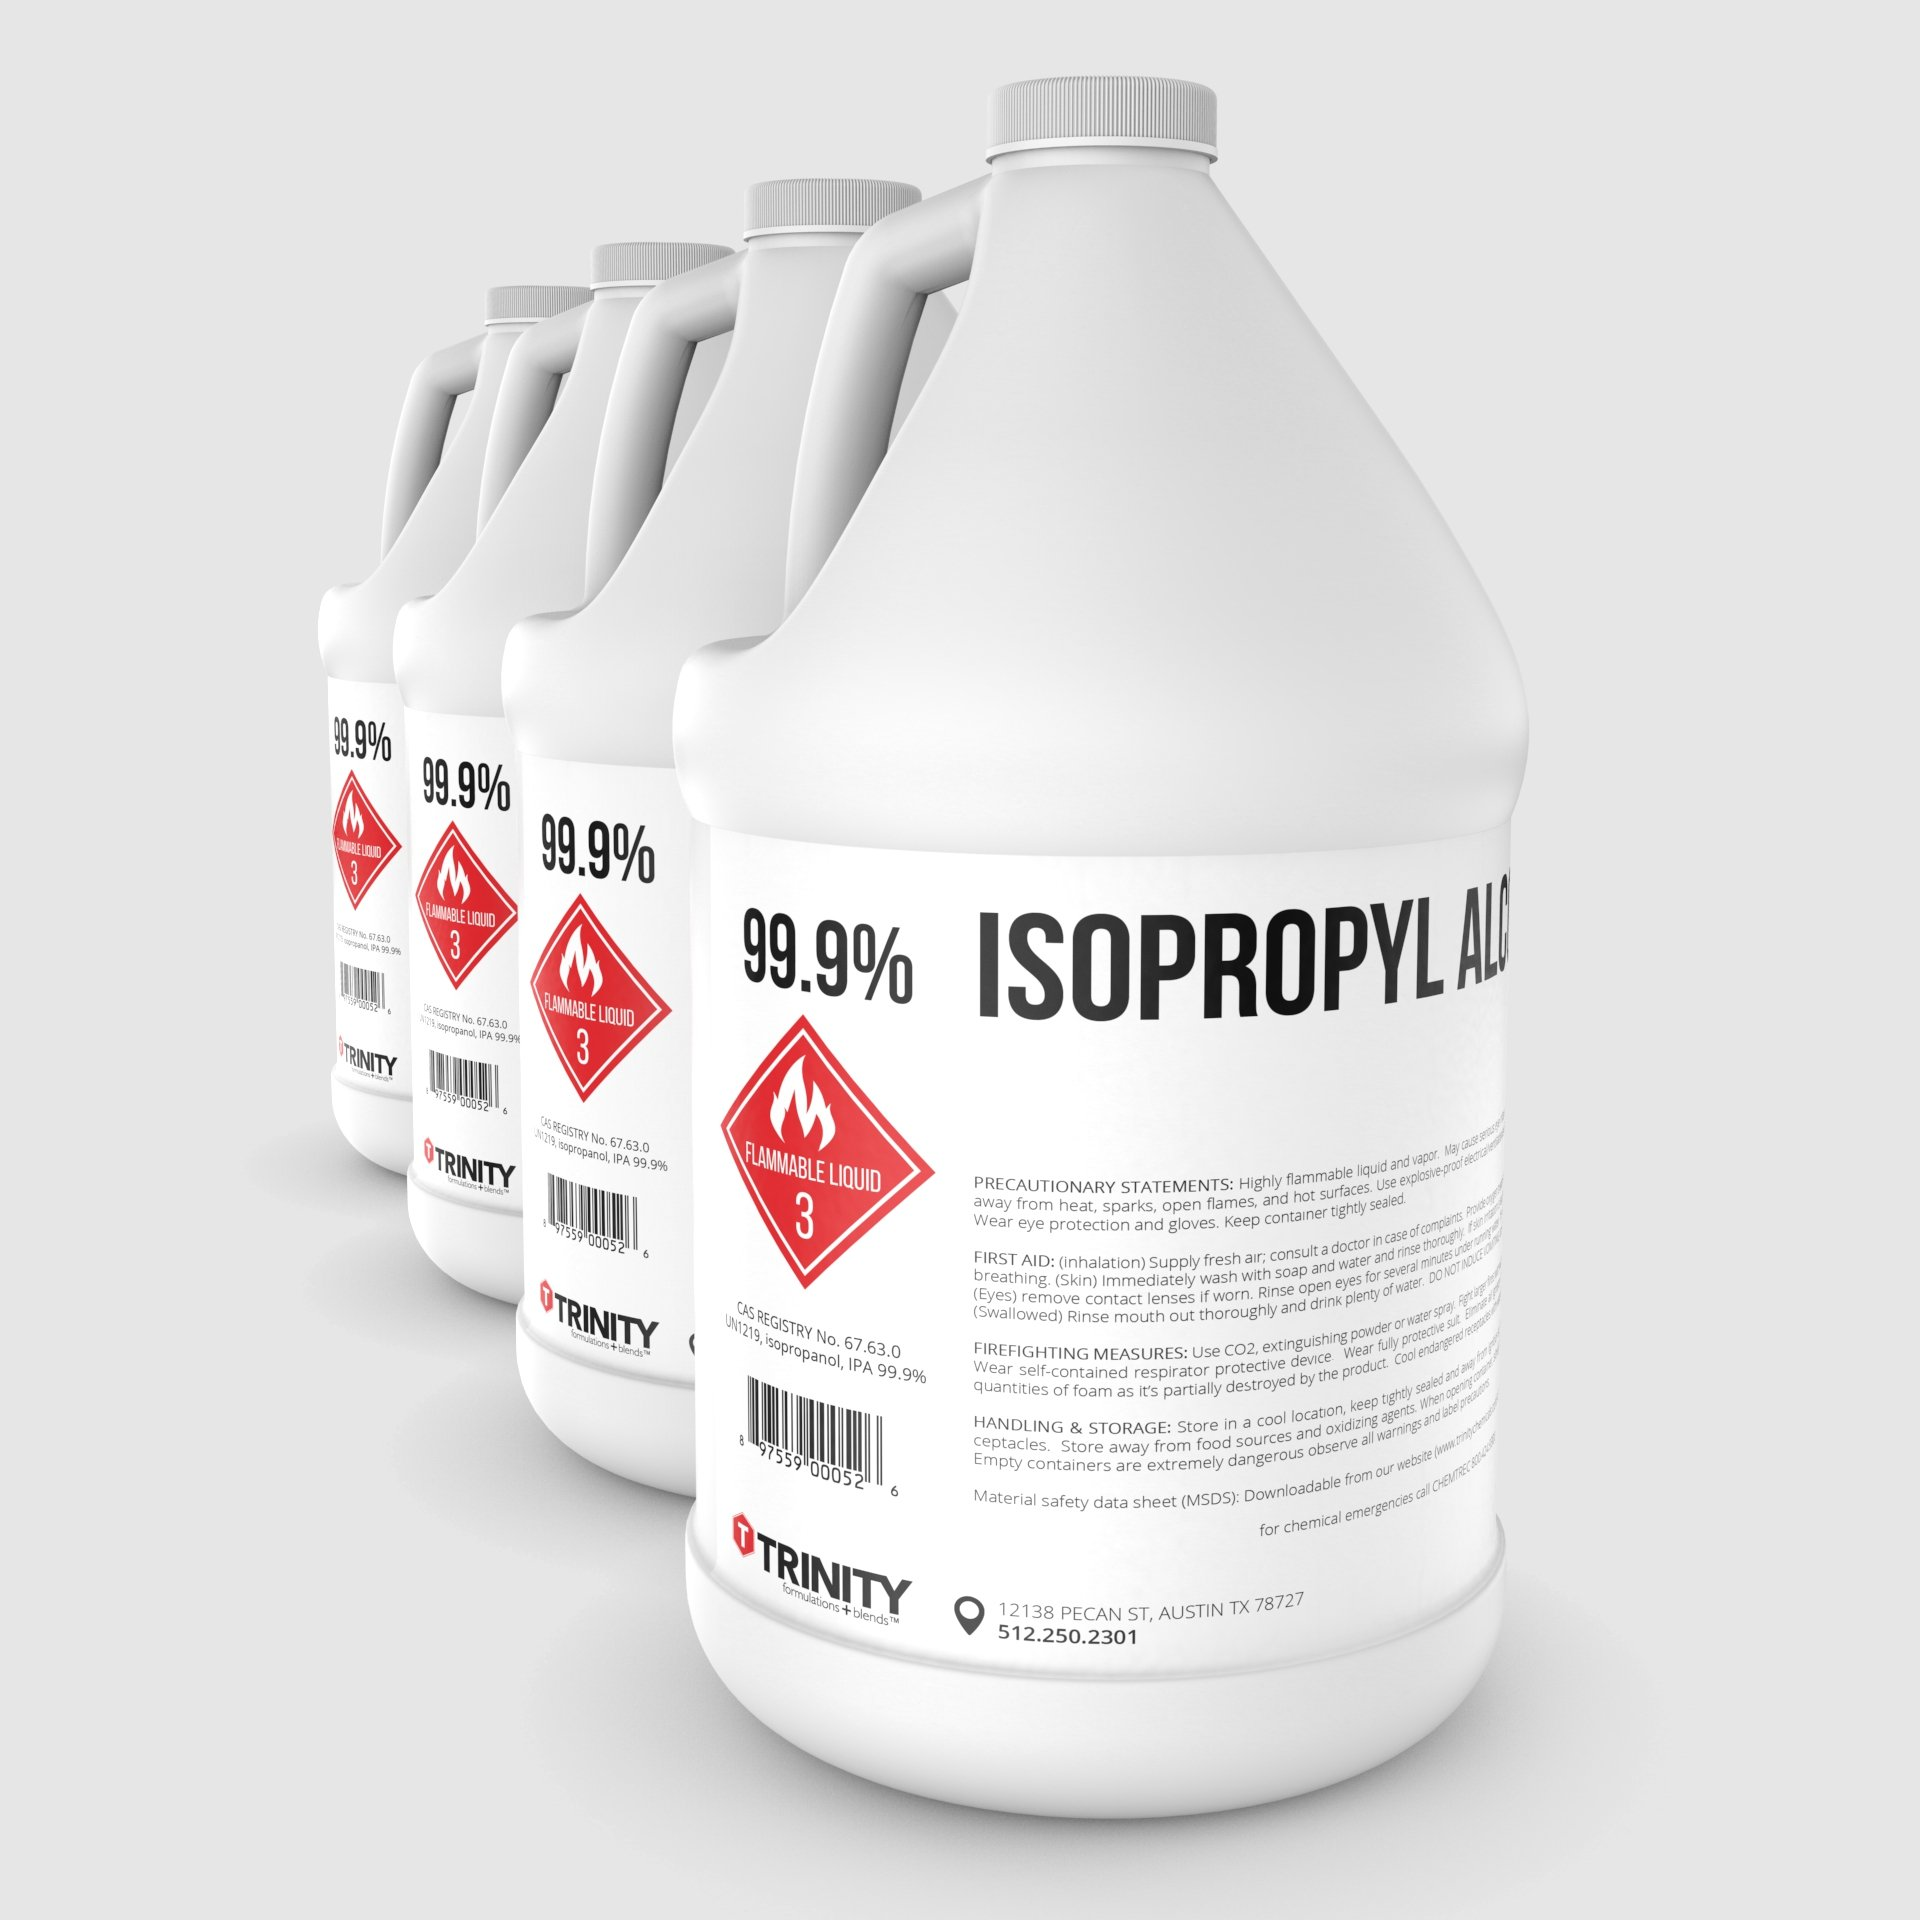 Isopropyl Alcohol 99.9% aka Isopropanol Alcohol 99.9% - A Laboratory-Grade Superior Solvent + Anhydrous Liquid Cleaner | 4 Gallons (3785 mL)